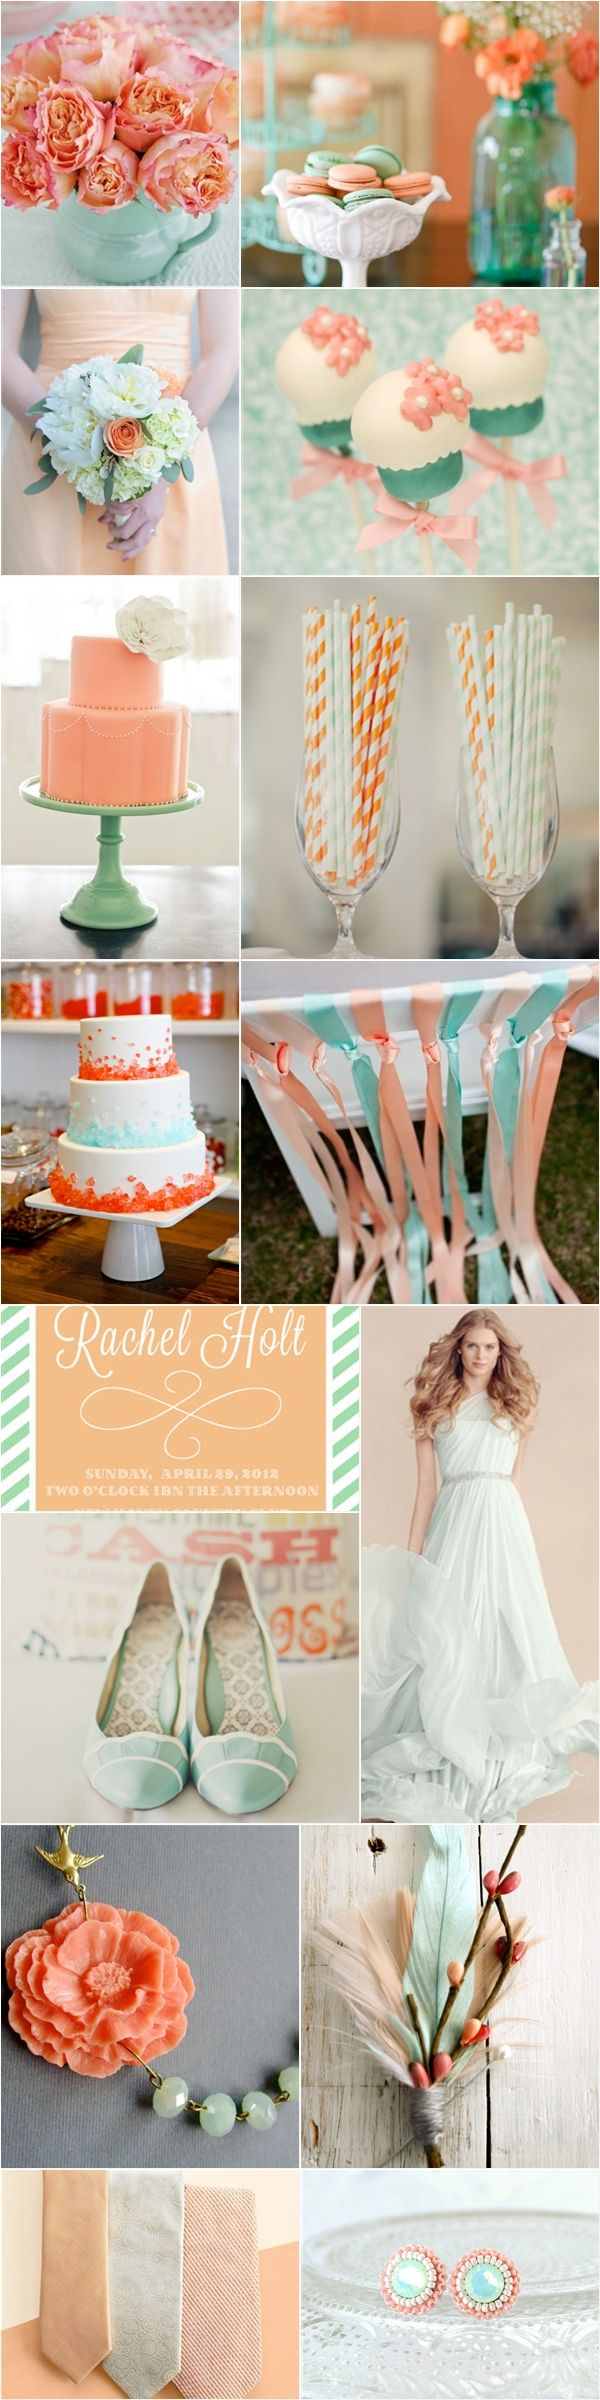 Un candy bar au ton pêche et vert d'eau #peachandmintgreen #wedding #candybar